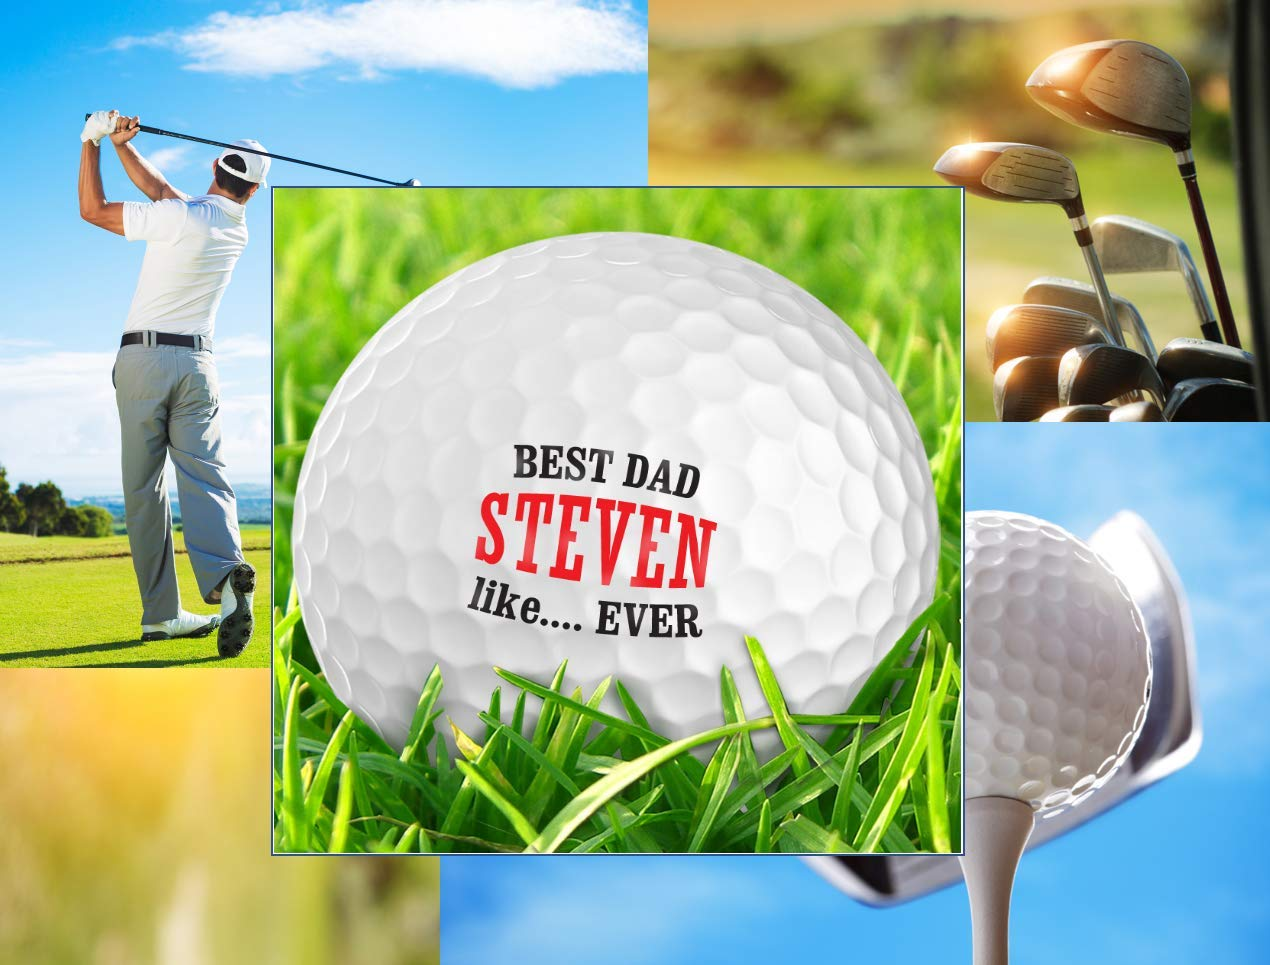 Infusion Father's Day Best Dad Like.Ever Golf Balls - Personalize The Name (12 Balls)